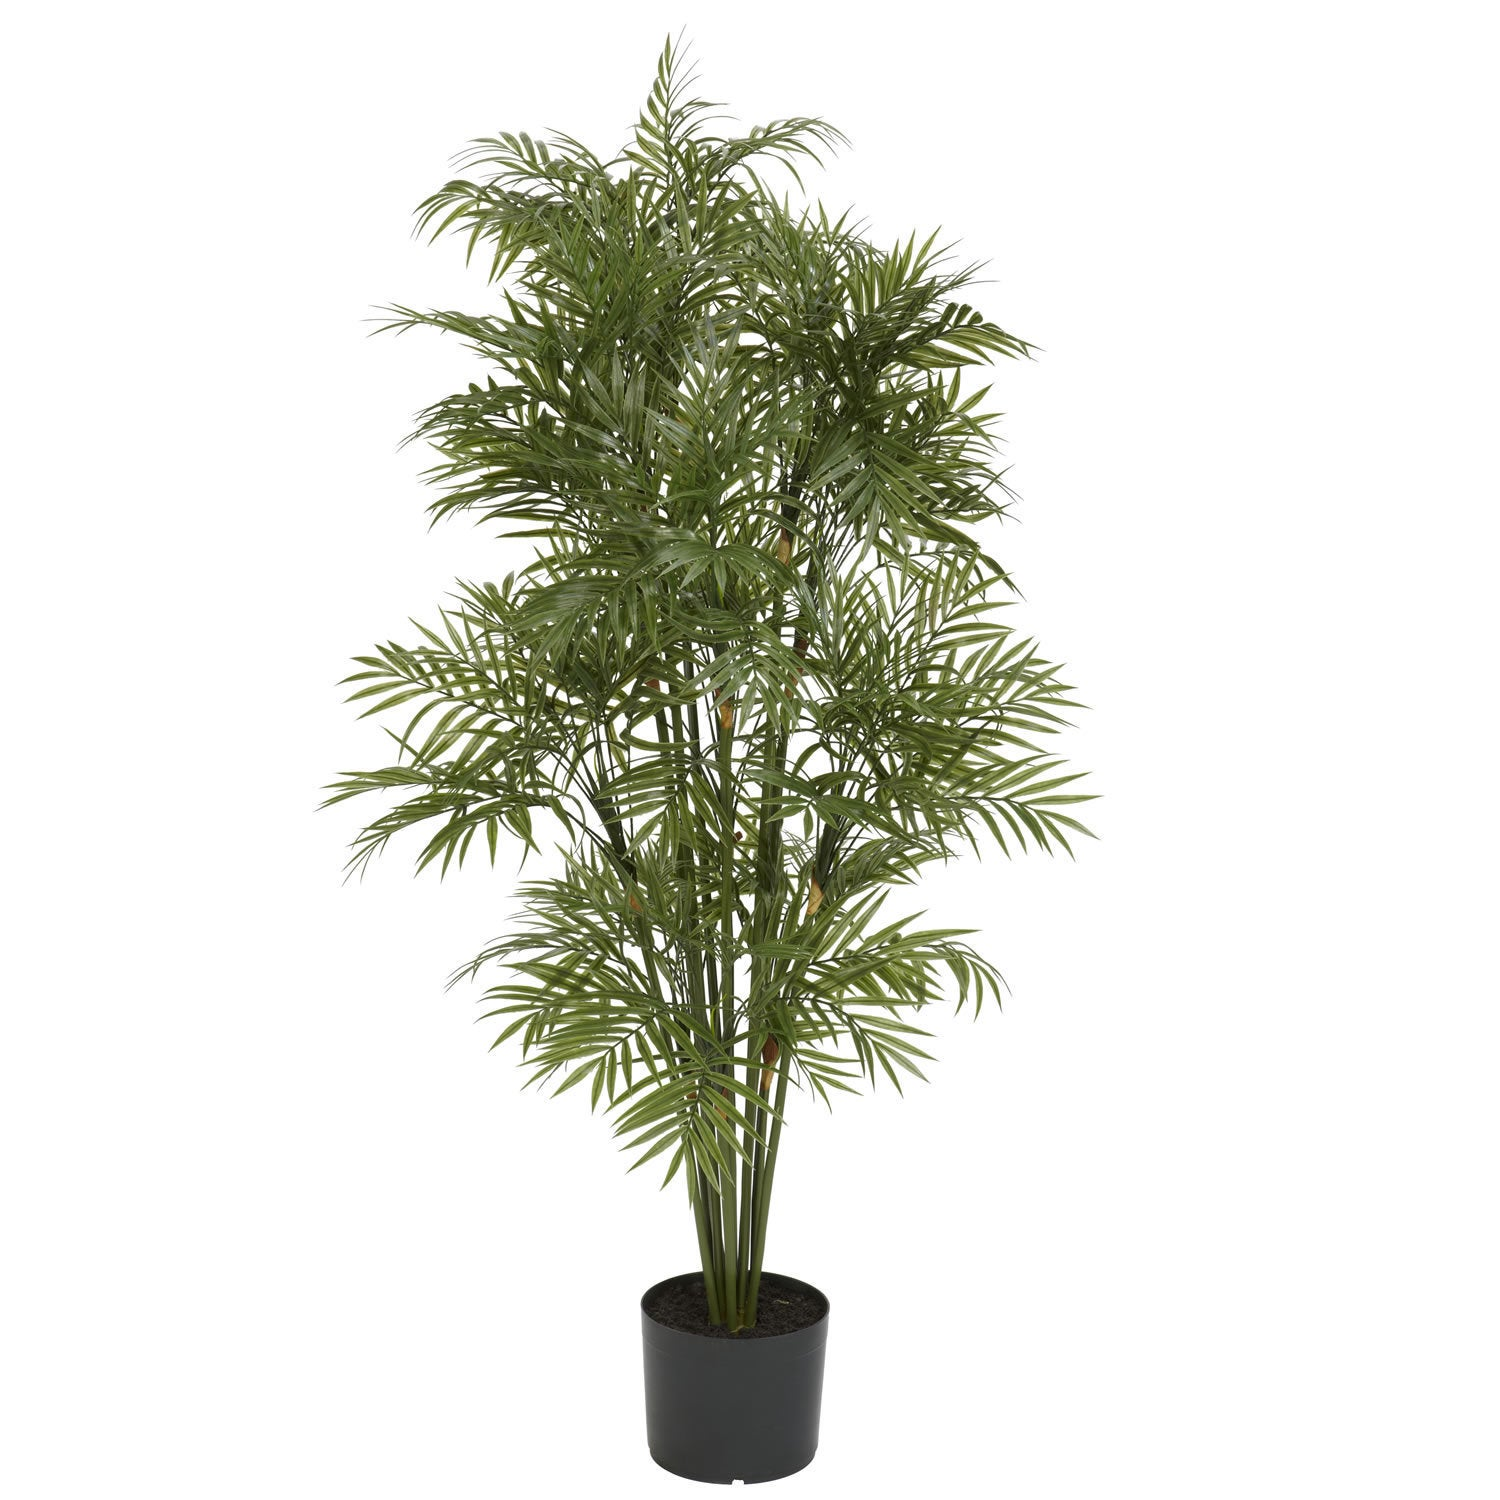 Buy Palms Artificial Plants Online at Overstock | Our Best ... on